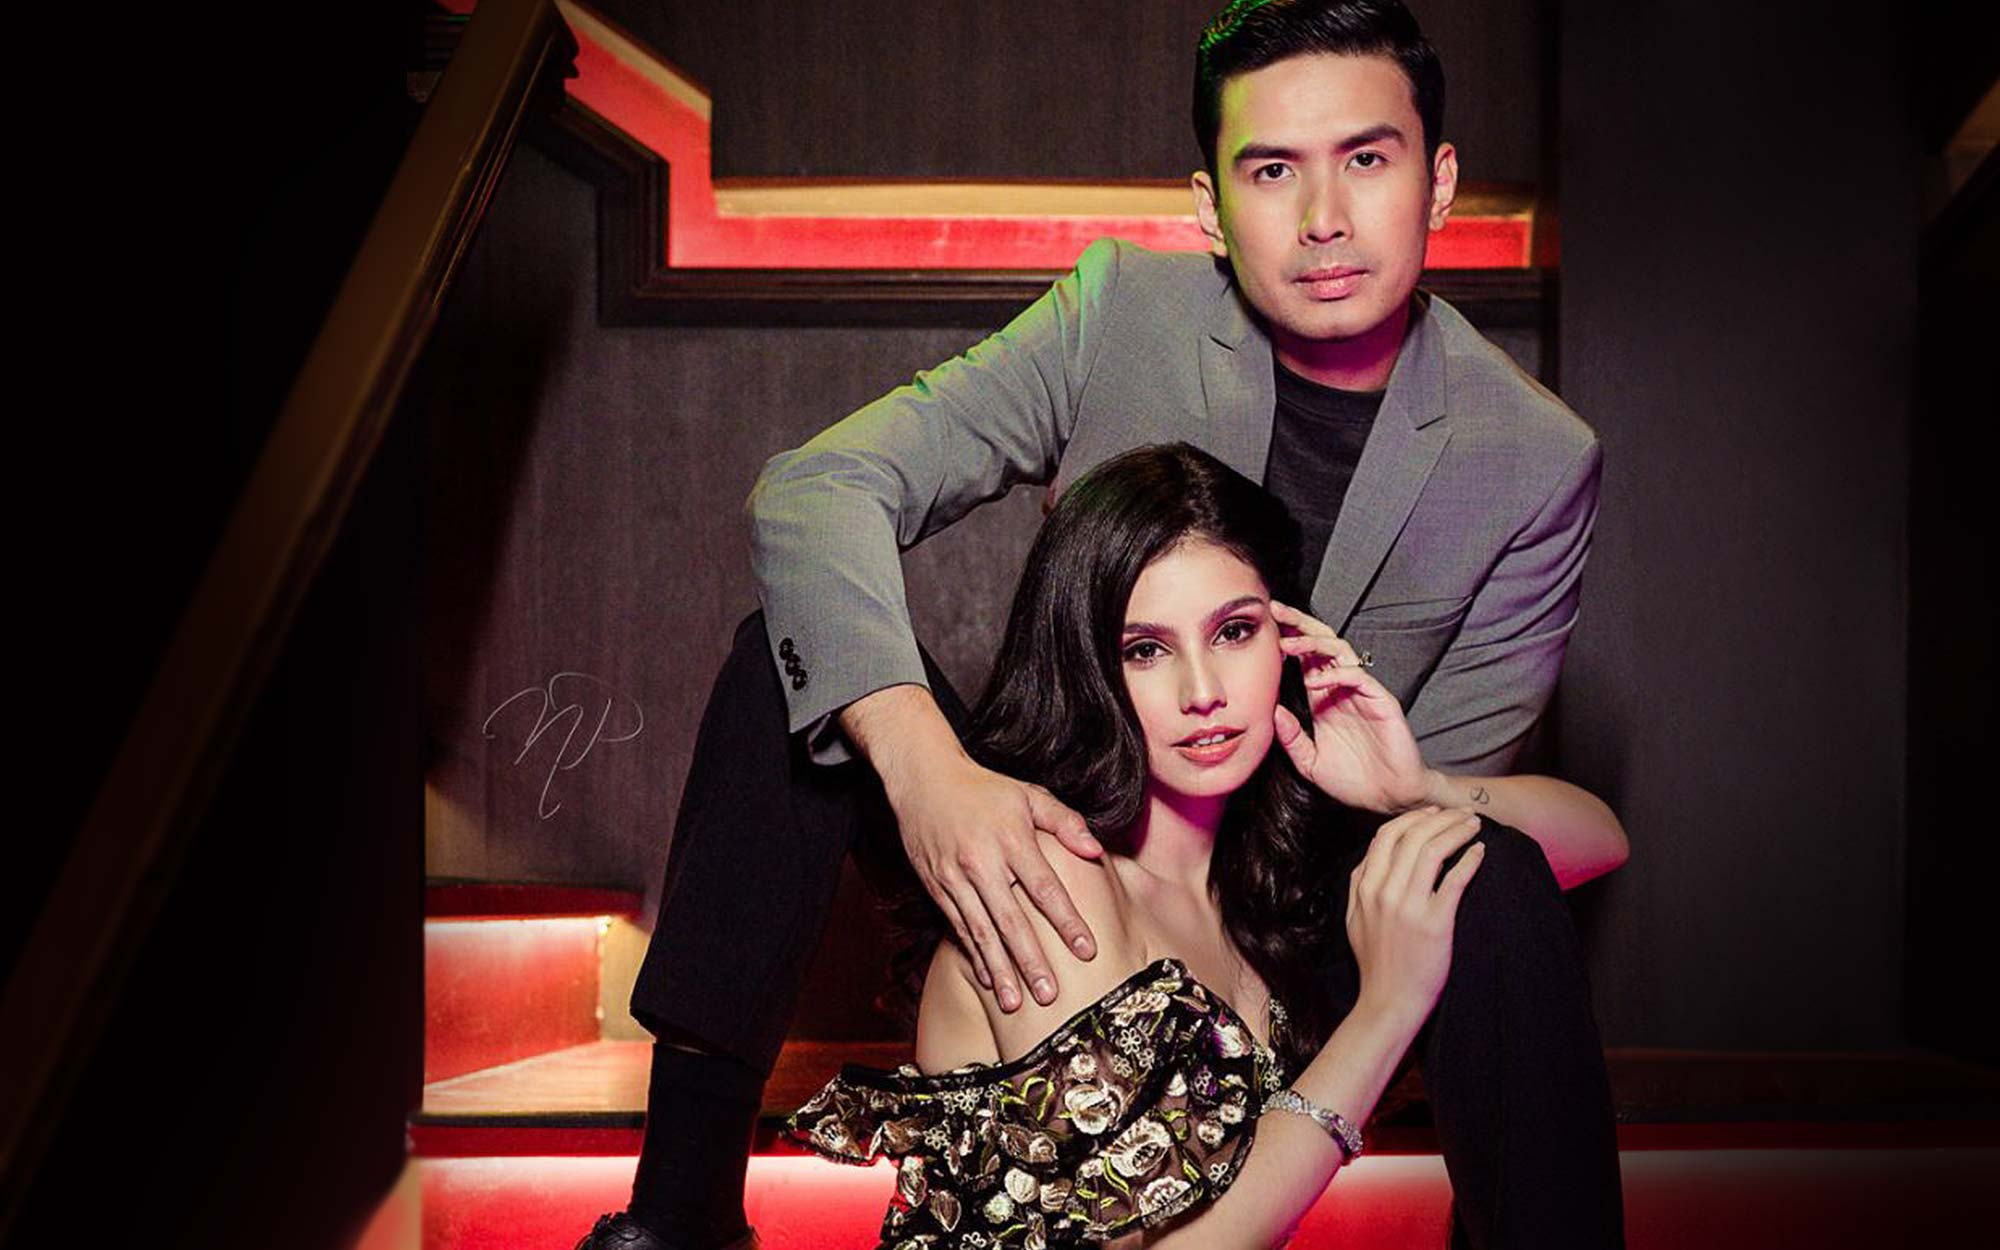 Christian Bautista and Kat Ramnani: The Best of Both Worlds